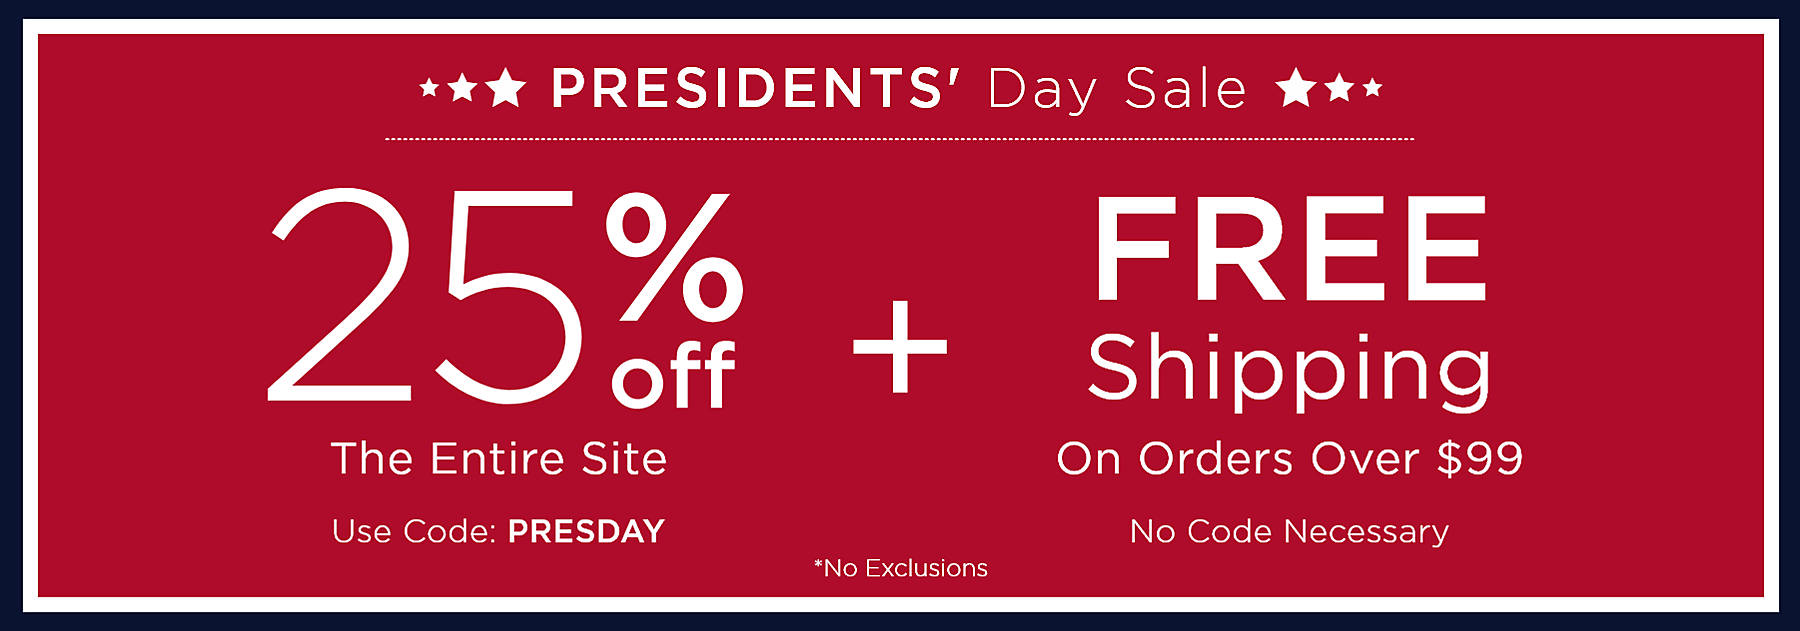 Last Day Presidents' Day Sale 25% Off Your Entire Purchase Use Code: PRESDAY No Exclusions Plus Free Shipping on Orders over $99